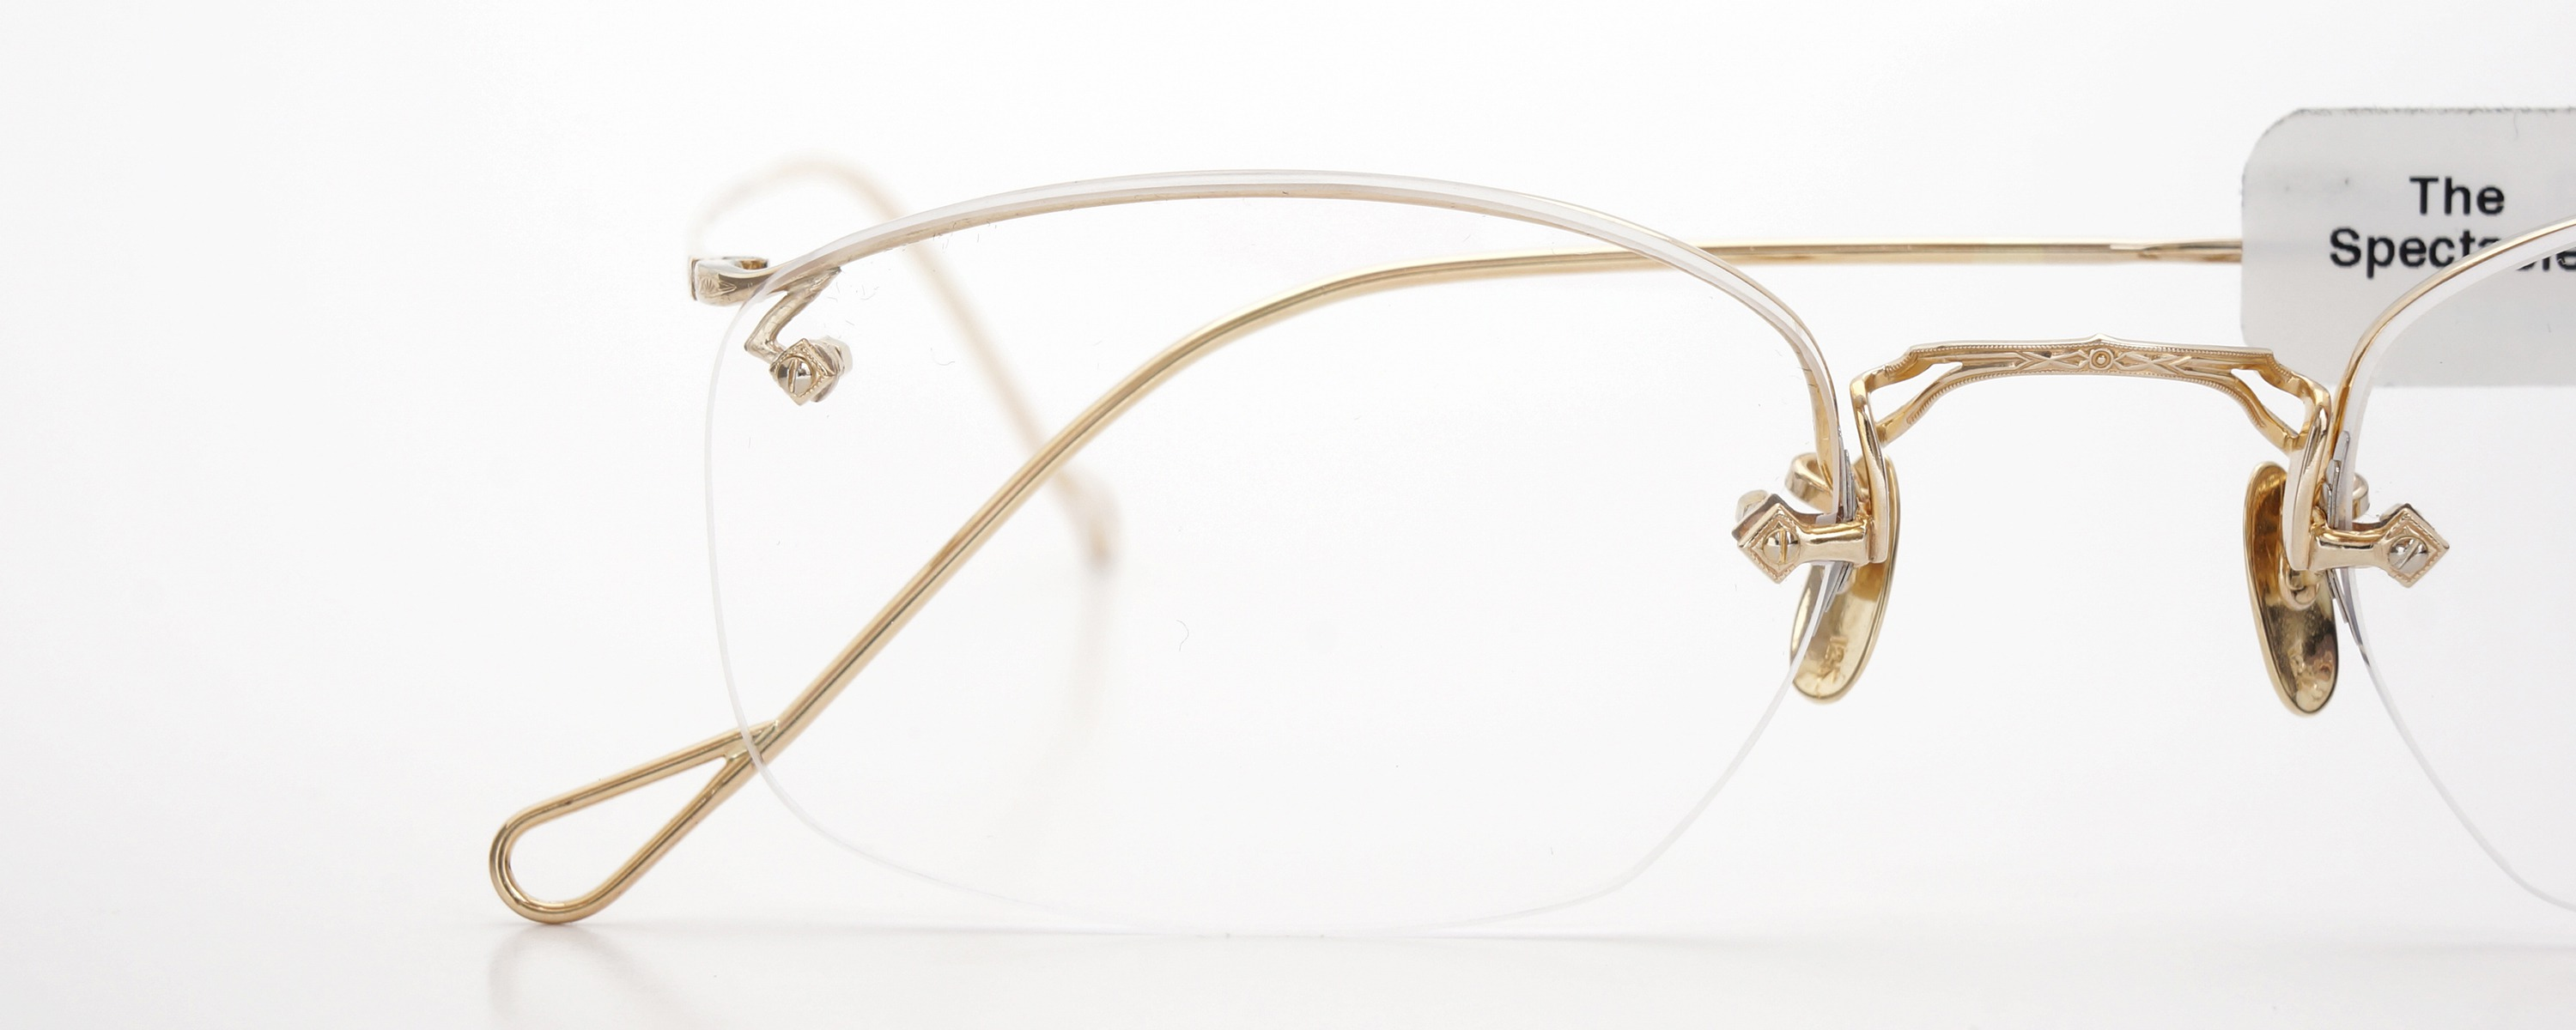 The Spectacle メガネ 1944 American Optical Everjax Ful-Vue lan YG 12kPads 51/22 イメージ18